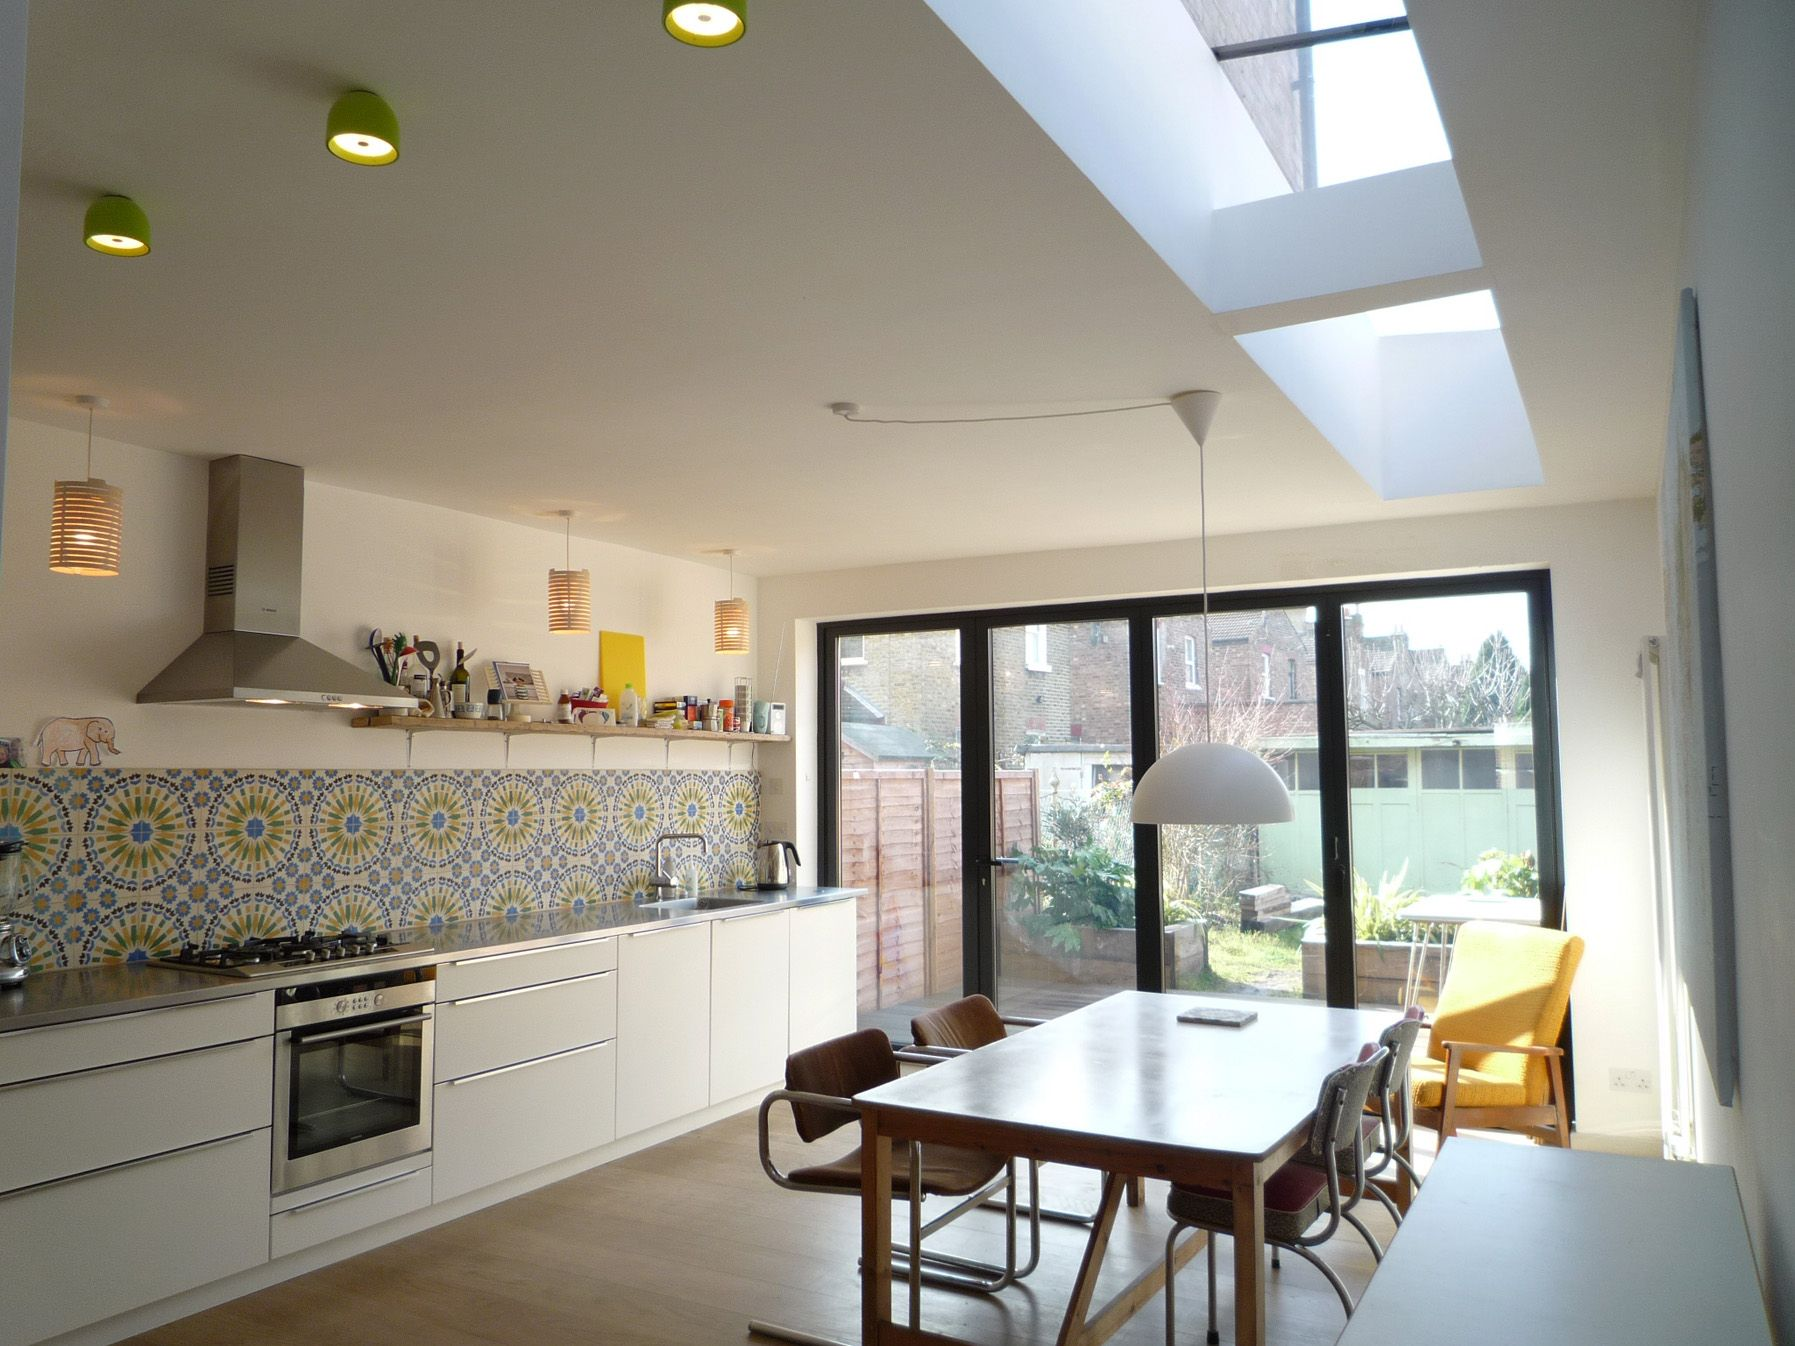 Terraced house kitchen extension google search for House extension interior designs